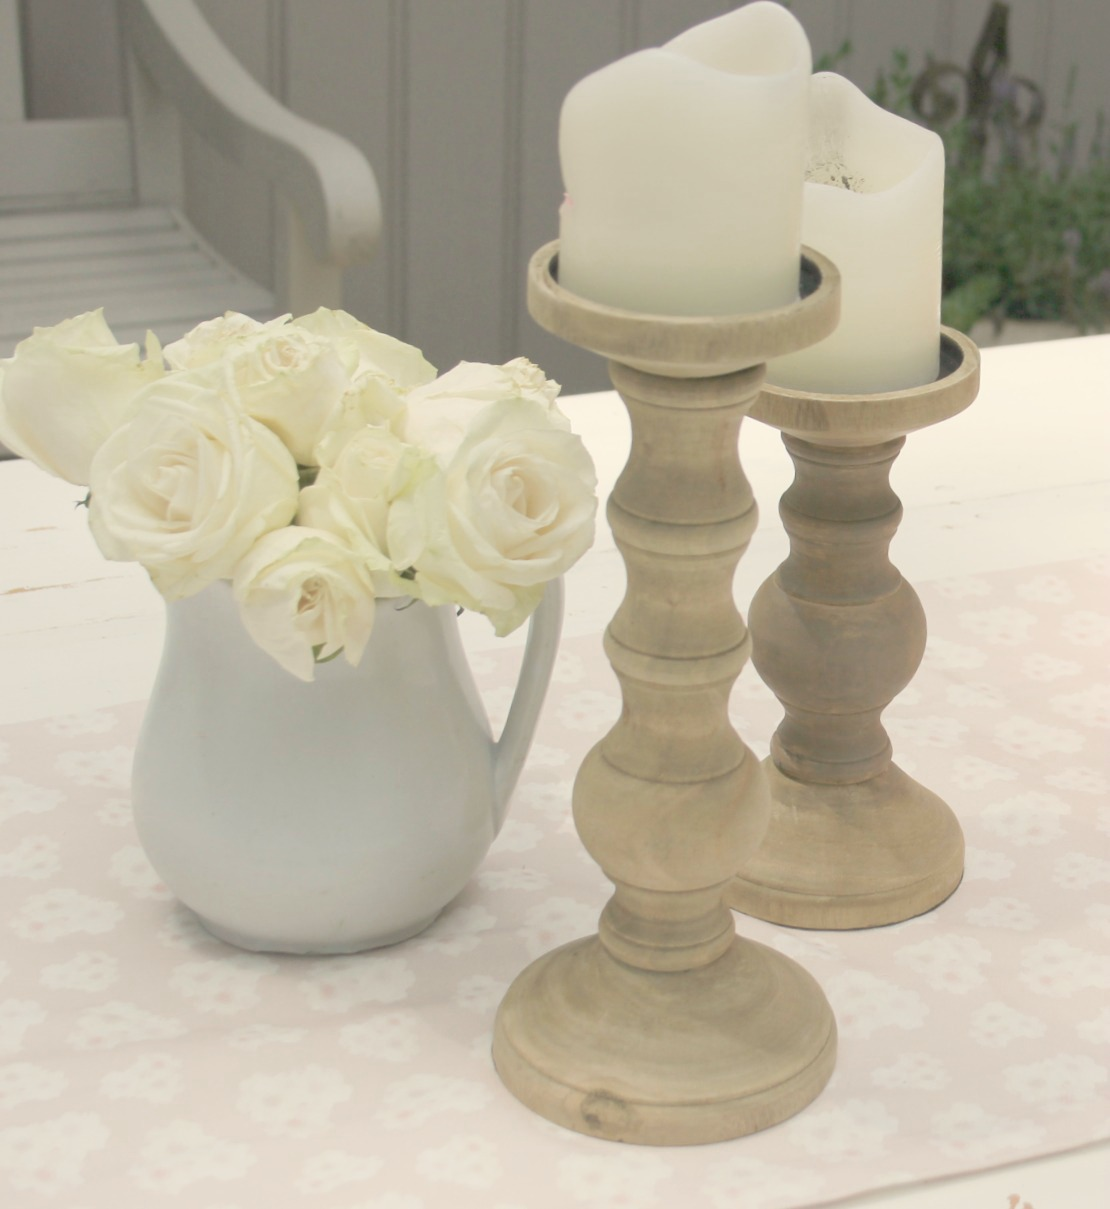 White ironstone pitcher with white roses and wood candlesticks - Hello Lovely Studio